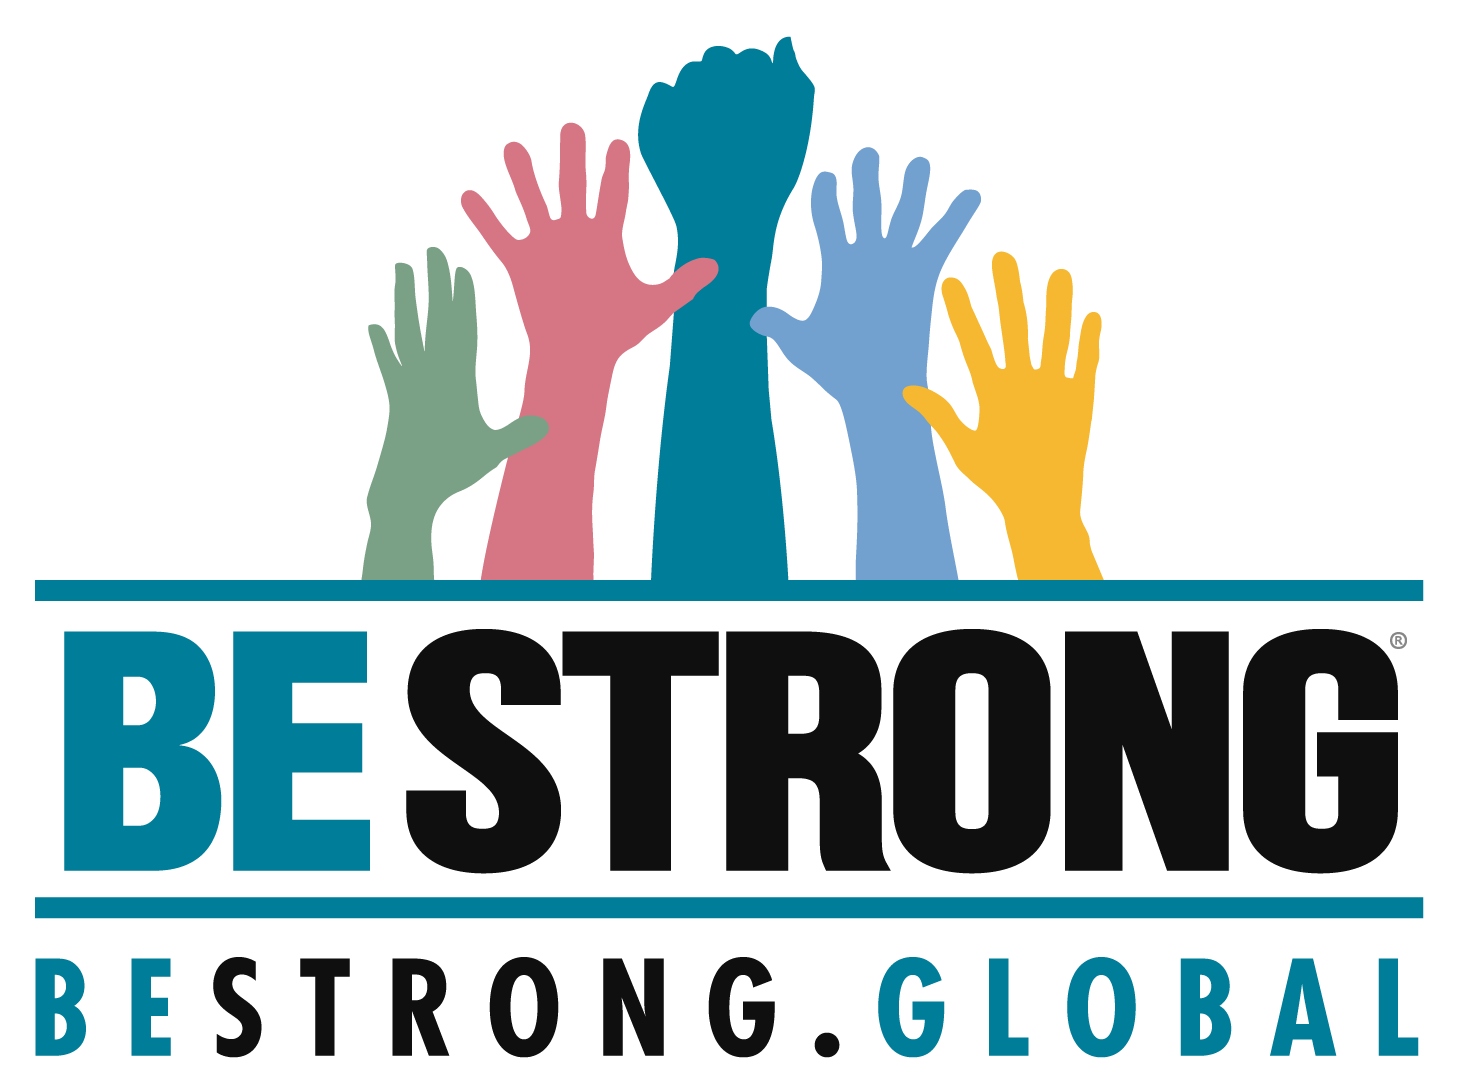 LG Partners With Be Strong for Journey to Sustainable Happiness Image